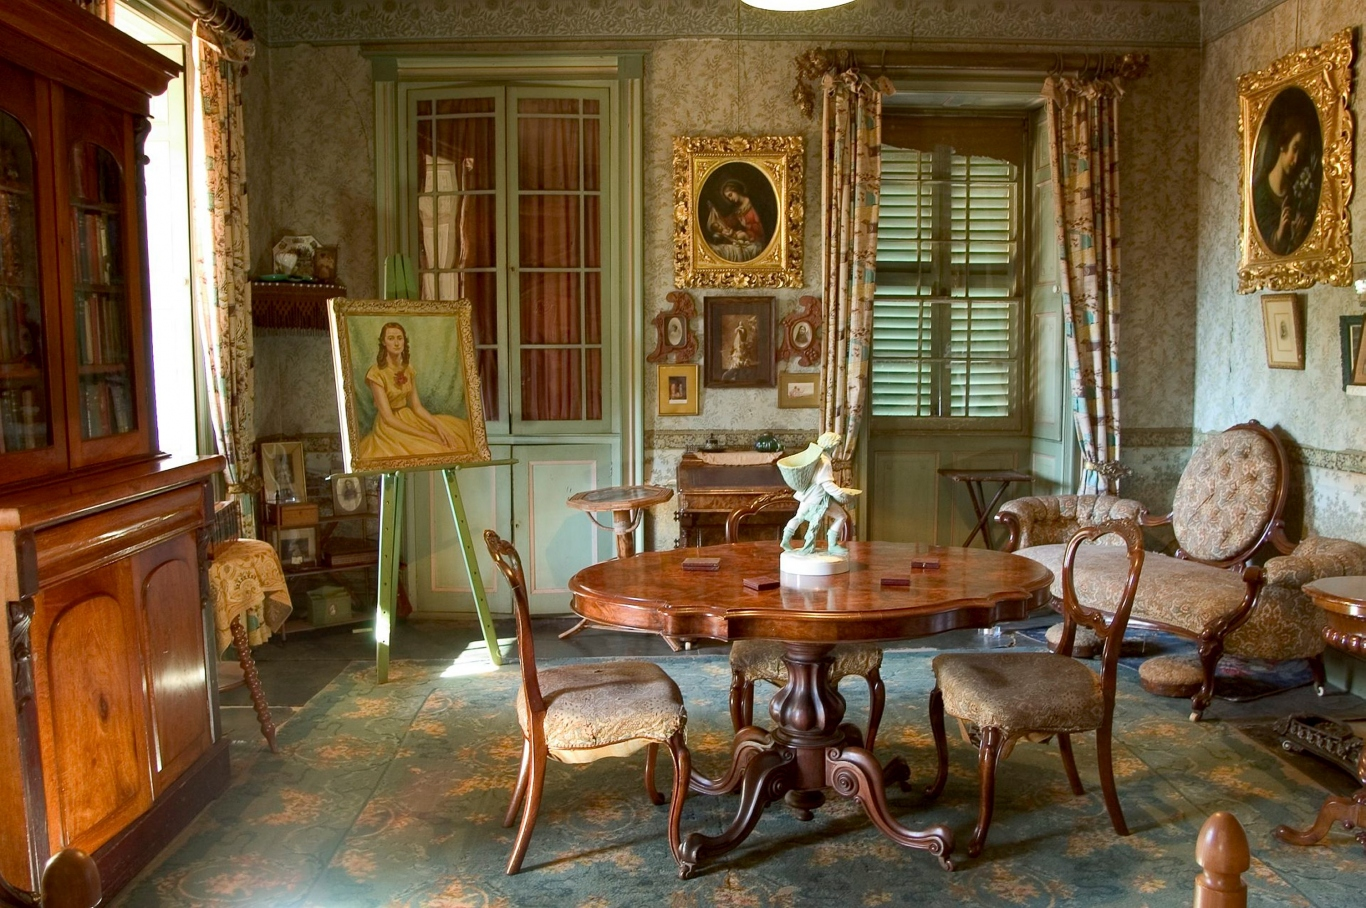 The sitting room, Rouse Hill House, June 2004.